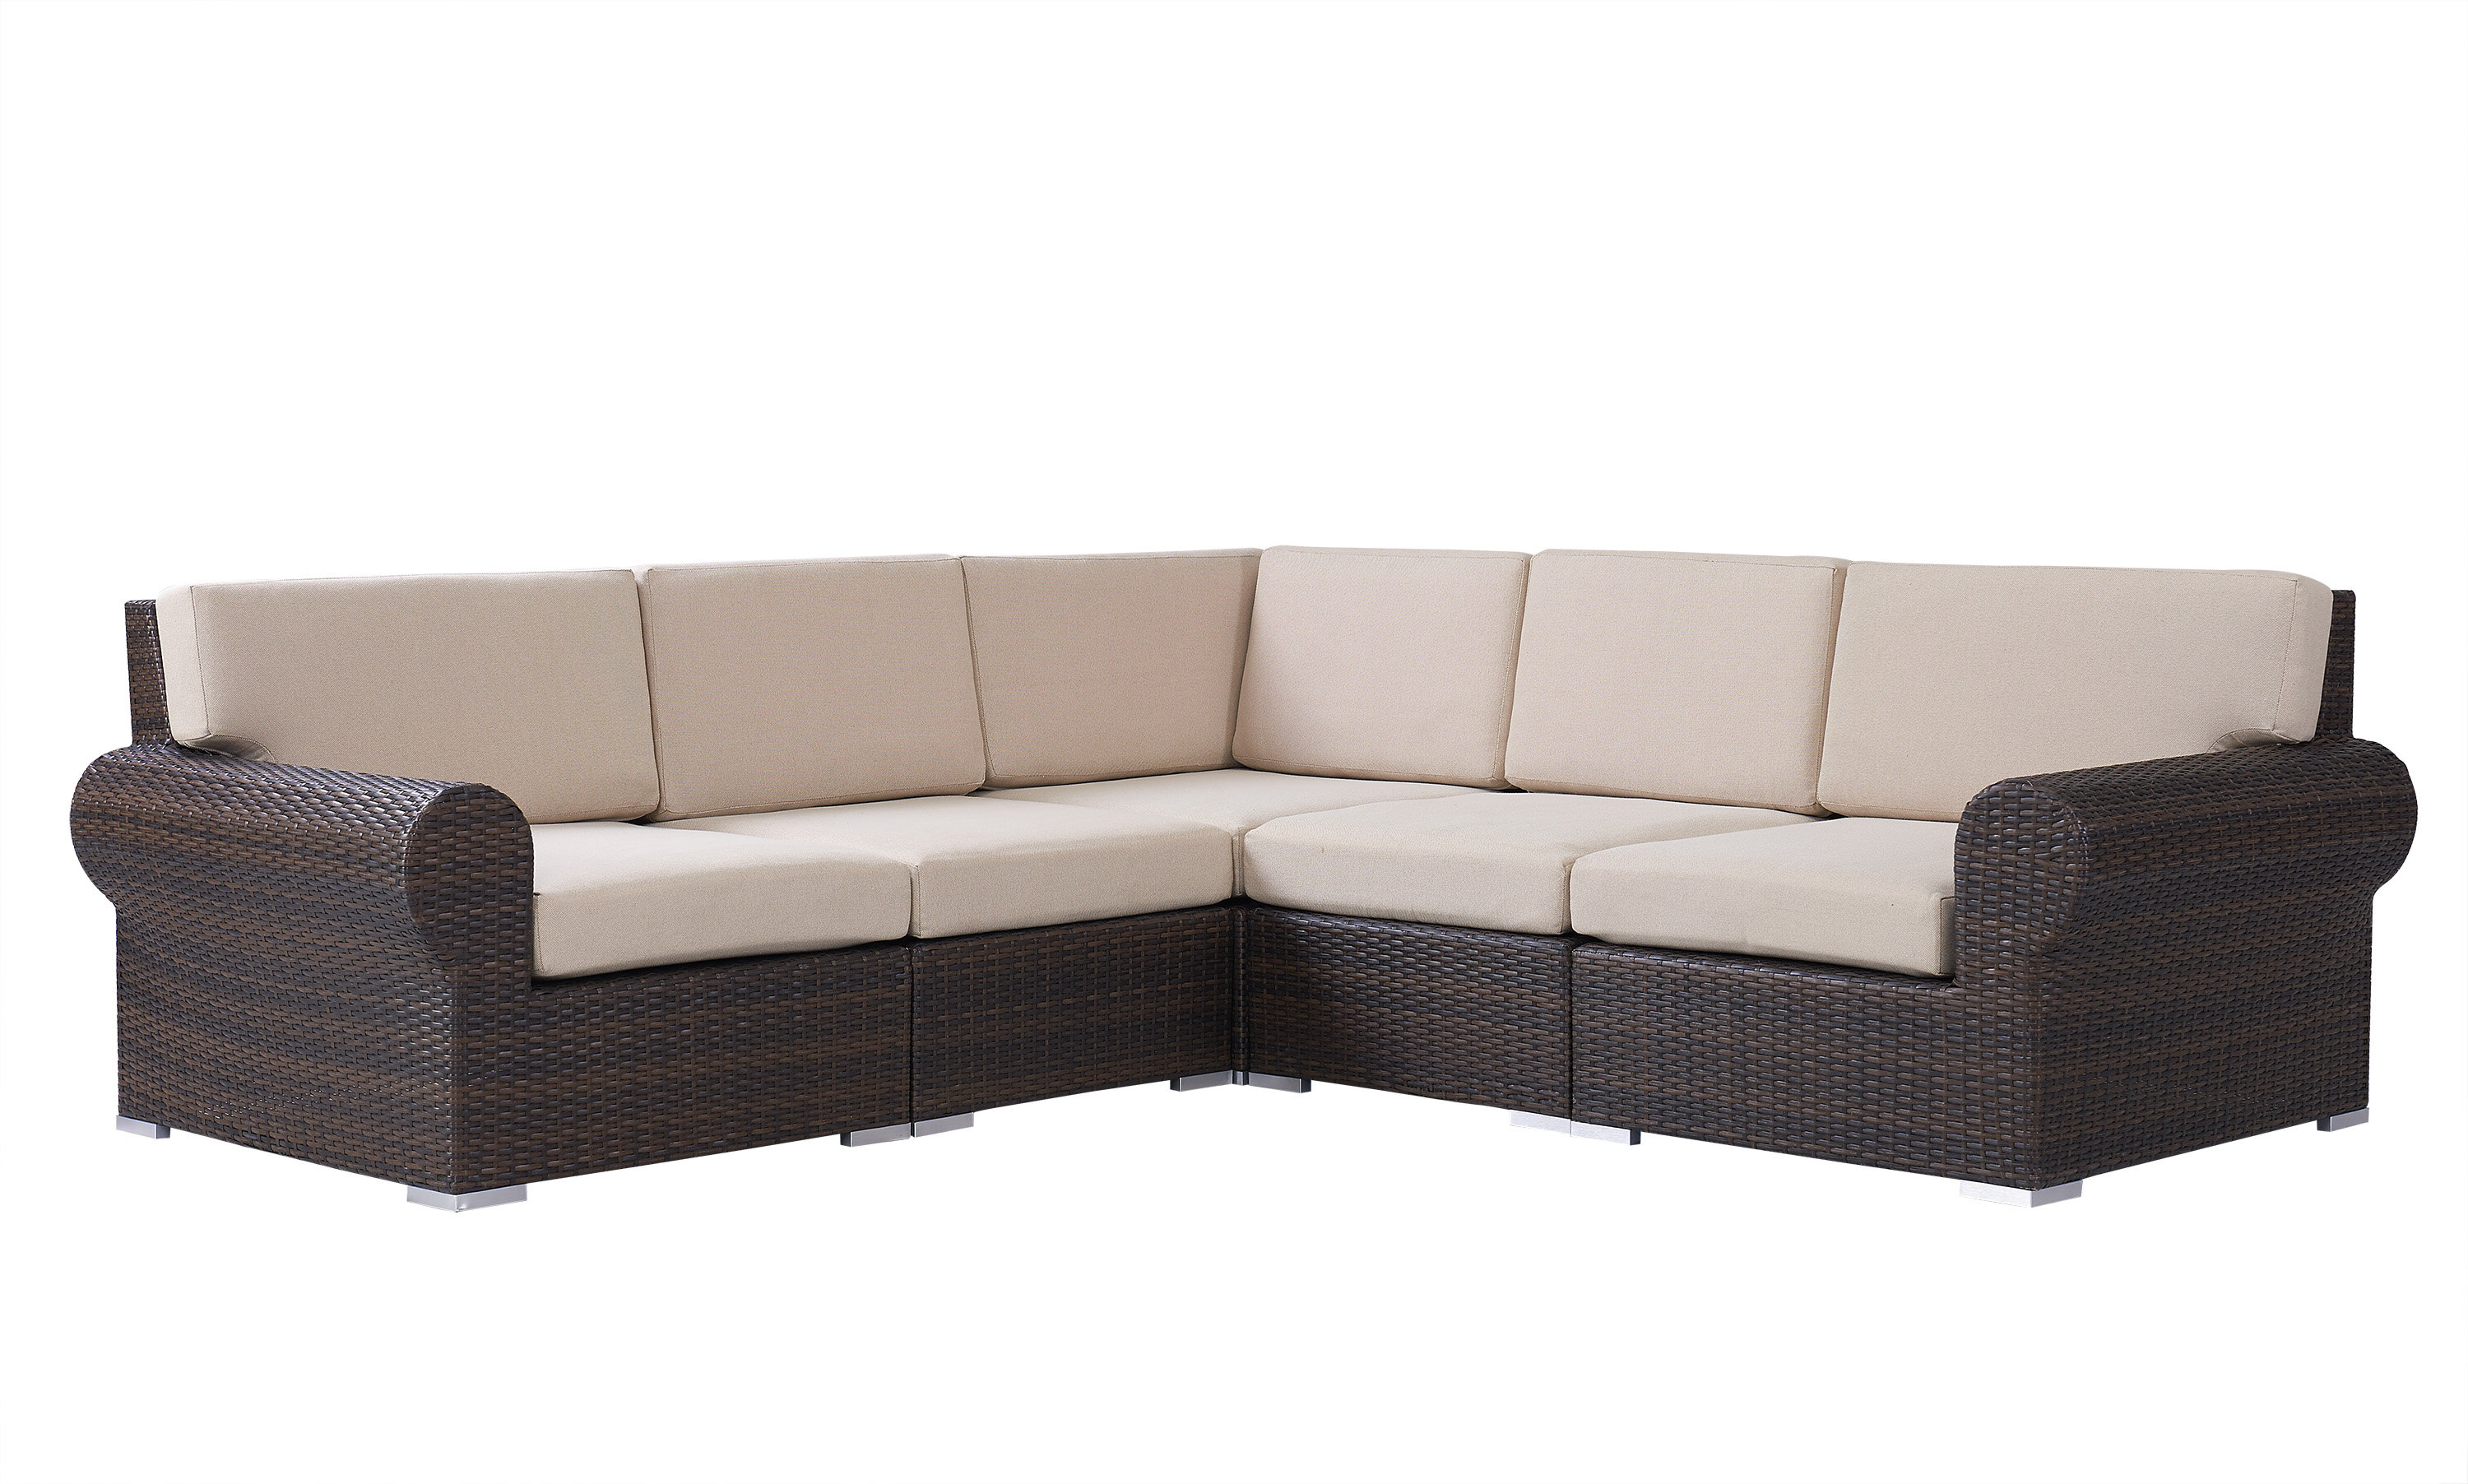 2019 Brookhaven Patio Sectional With Cushions Pertaining To Patio Sofas With Cushions (View 12 of 20)